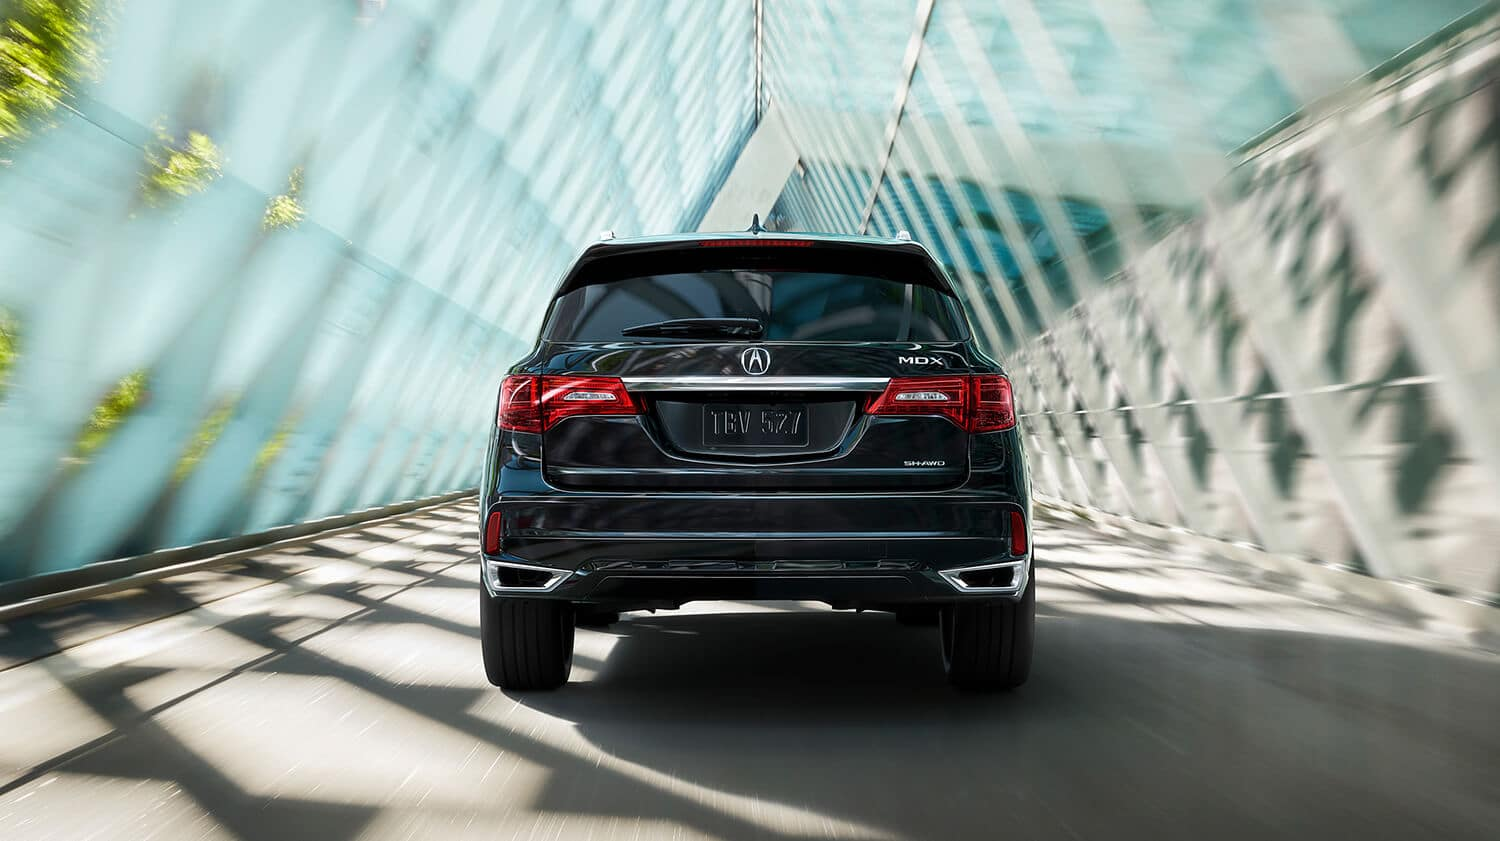 2019 Acura MDX Exterior Rear Angle Dual Exhaust